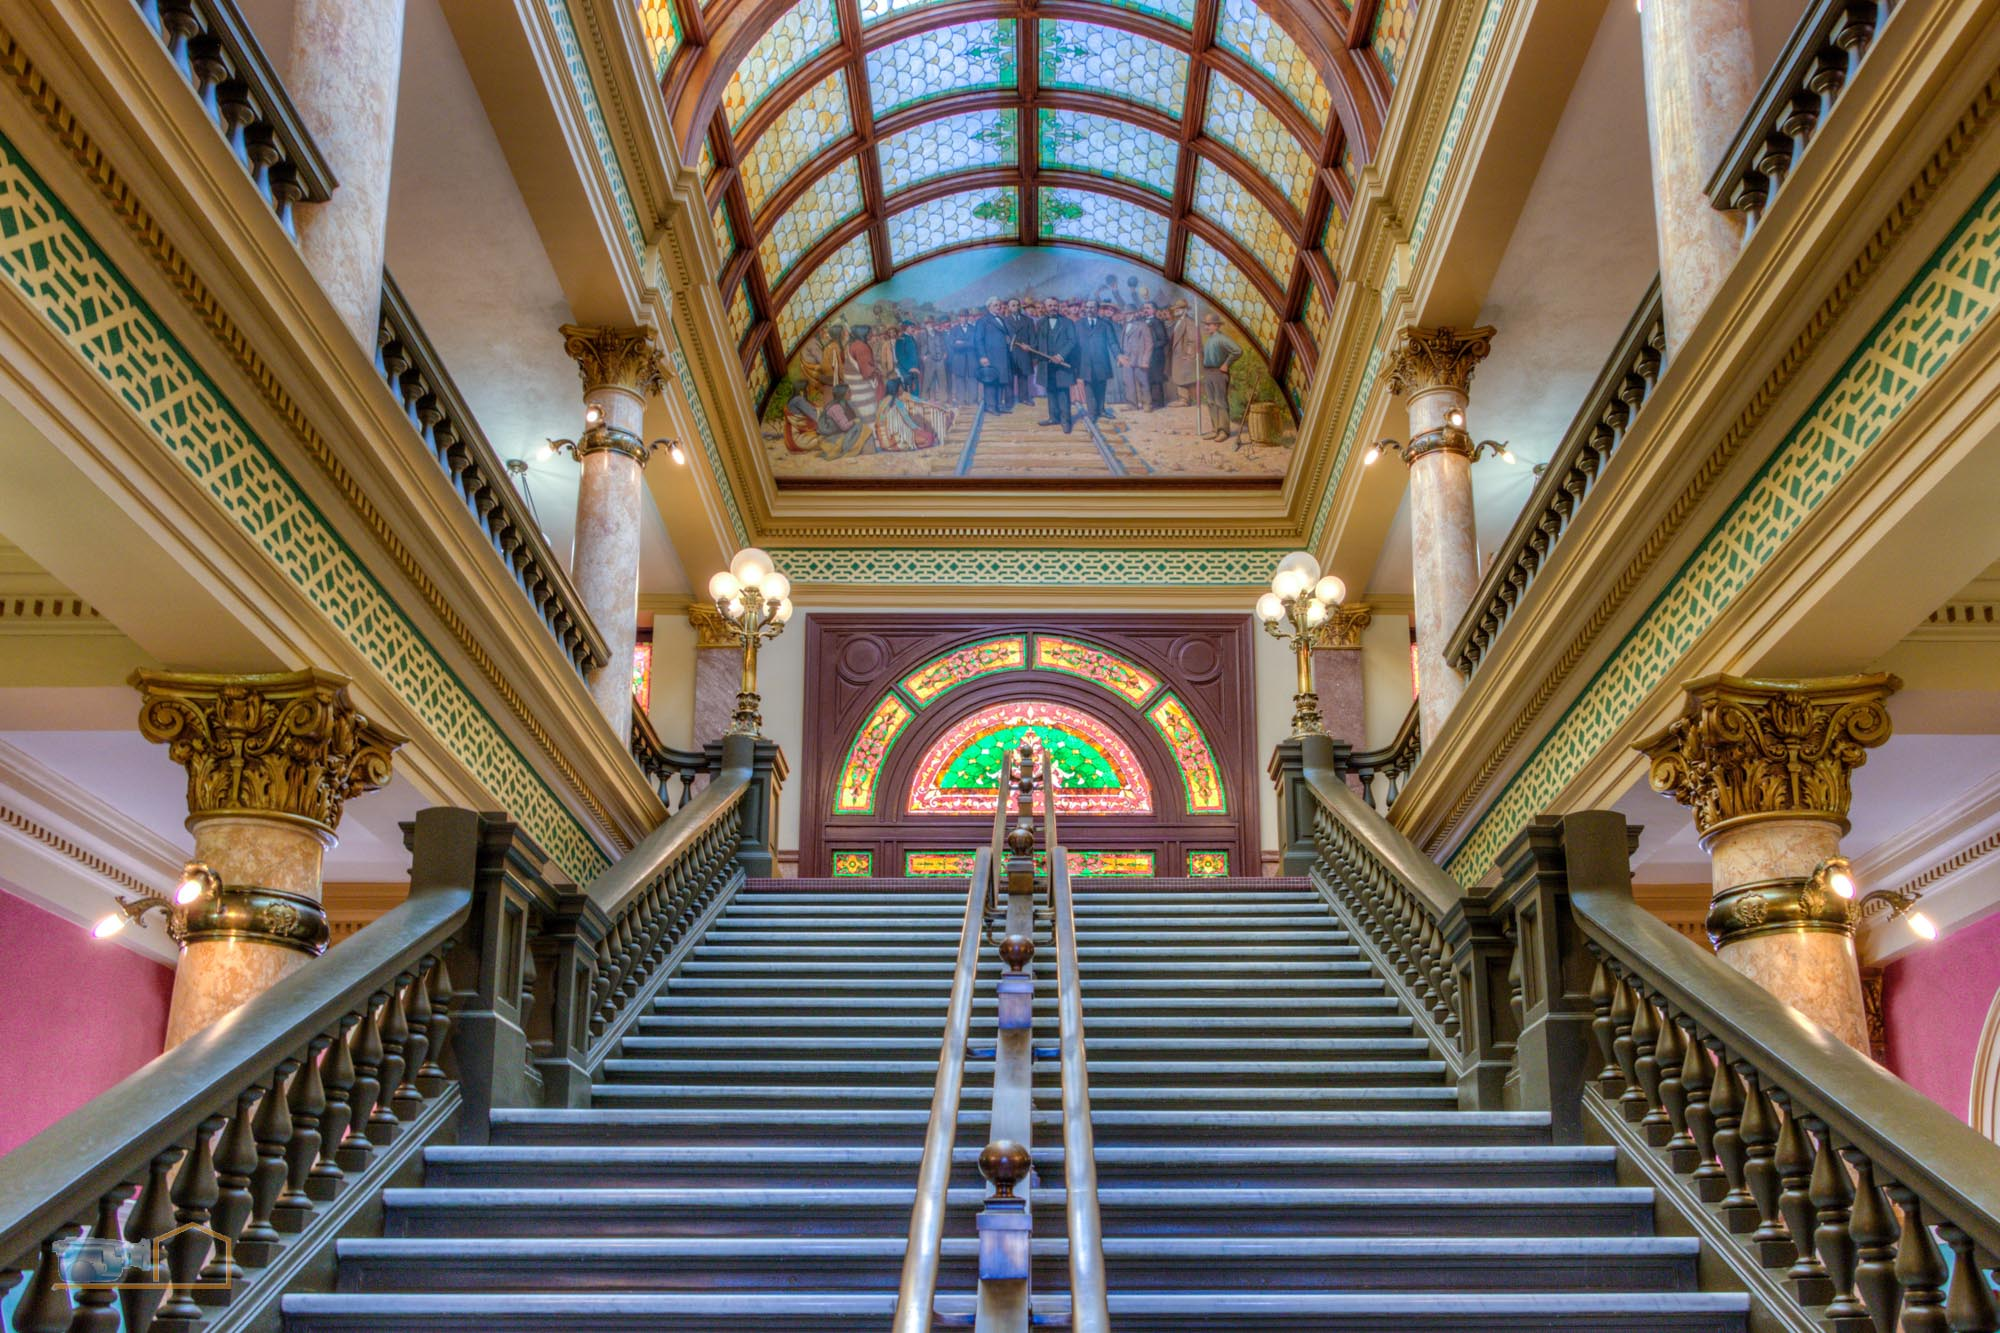 0603-Helena_1508_Capital_Interior_Stairway_and_Ceiling_E_HiRes_Web